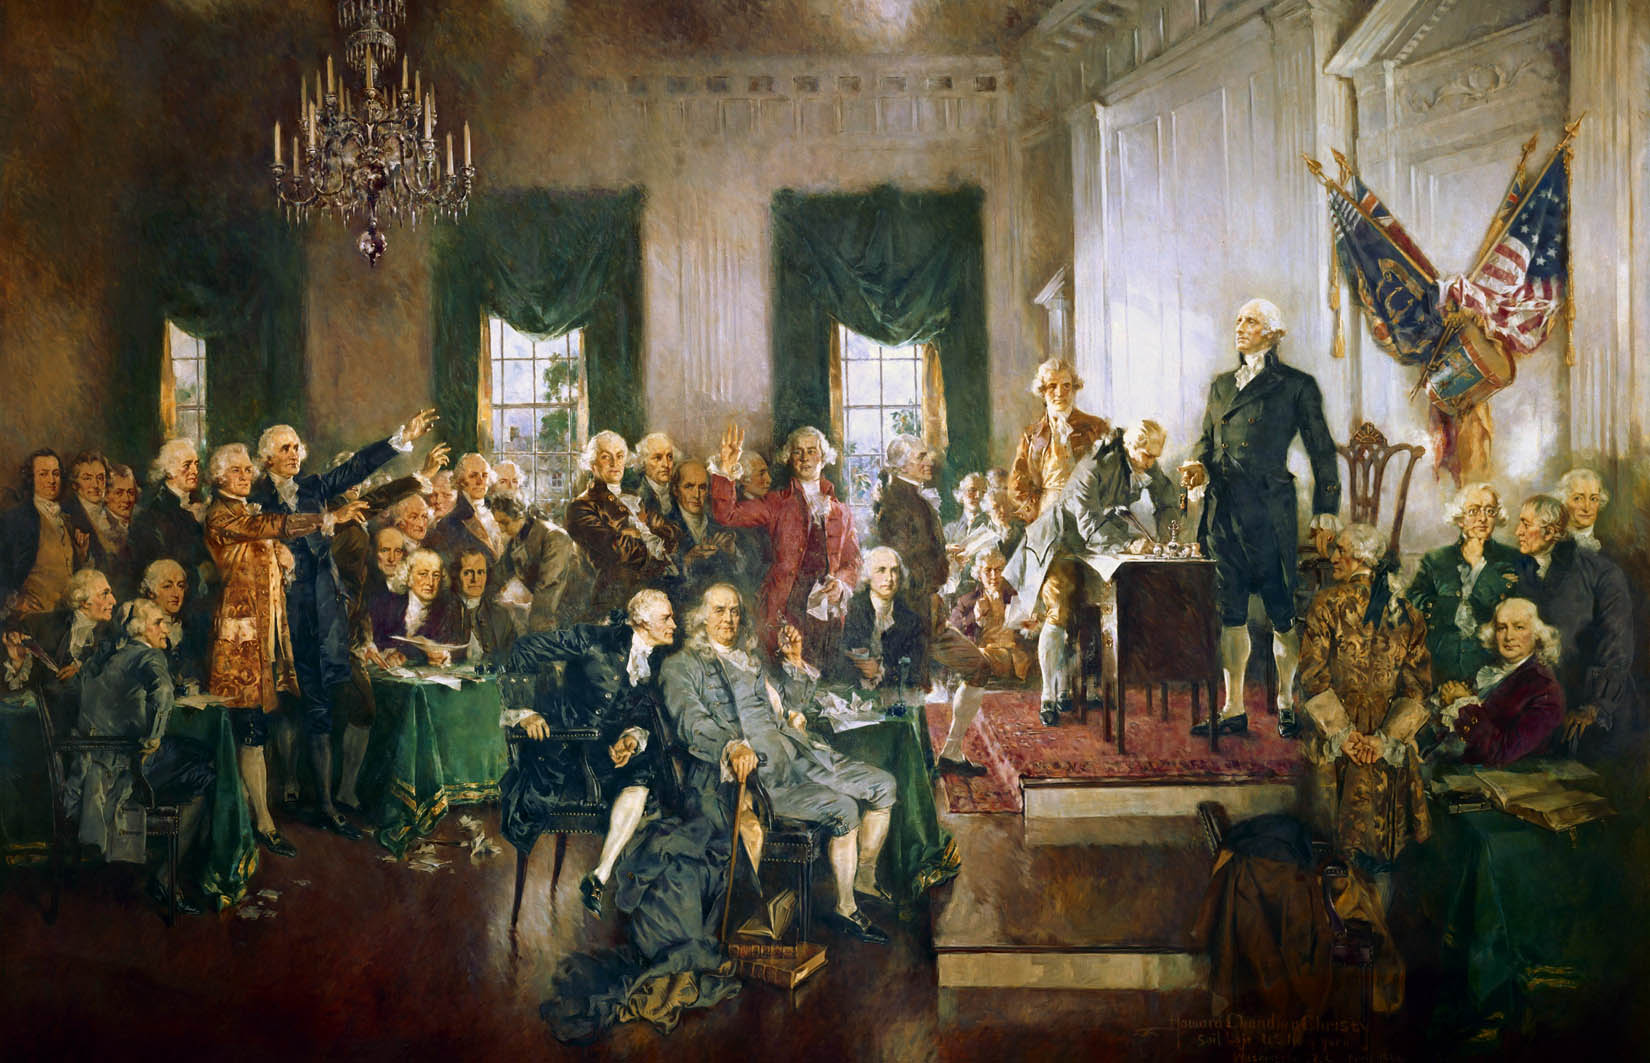 A crowd of men sit and stand in a formal room with a chandelier and fancy window treatments. They are dressed in formal suits from the 1700s. They face a dais with a desk, where one man stands in front of a chair. Another man appears to be writing on something on the desk. Flags decorate the wall behind the standing man.